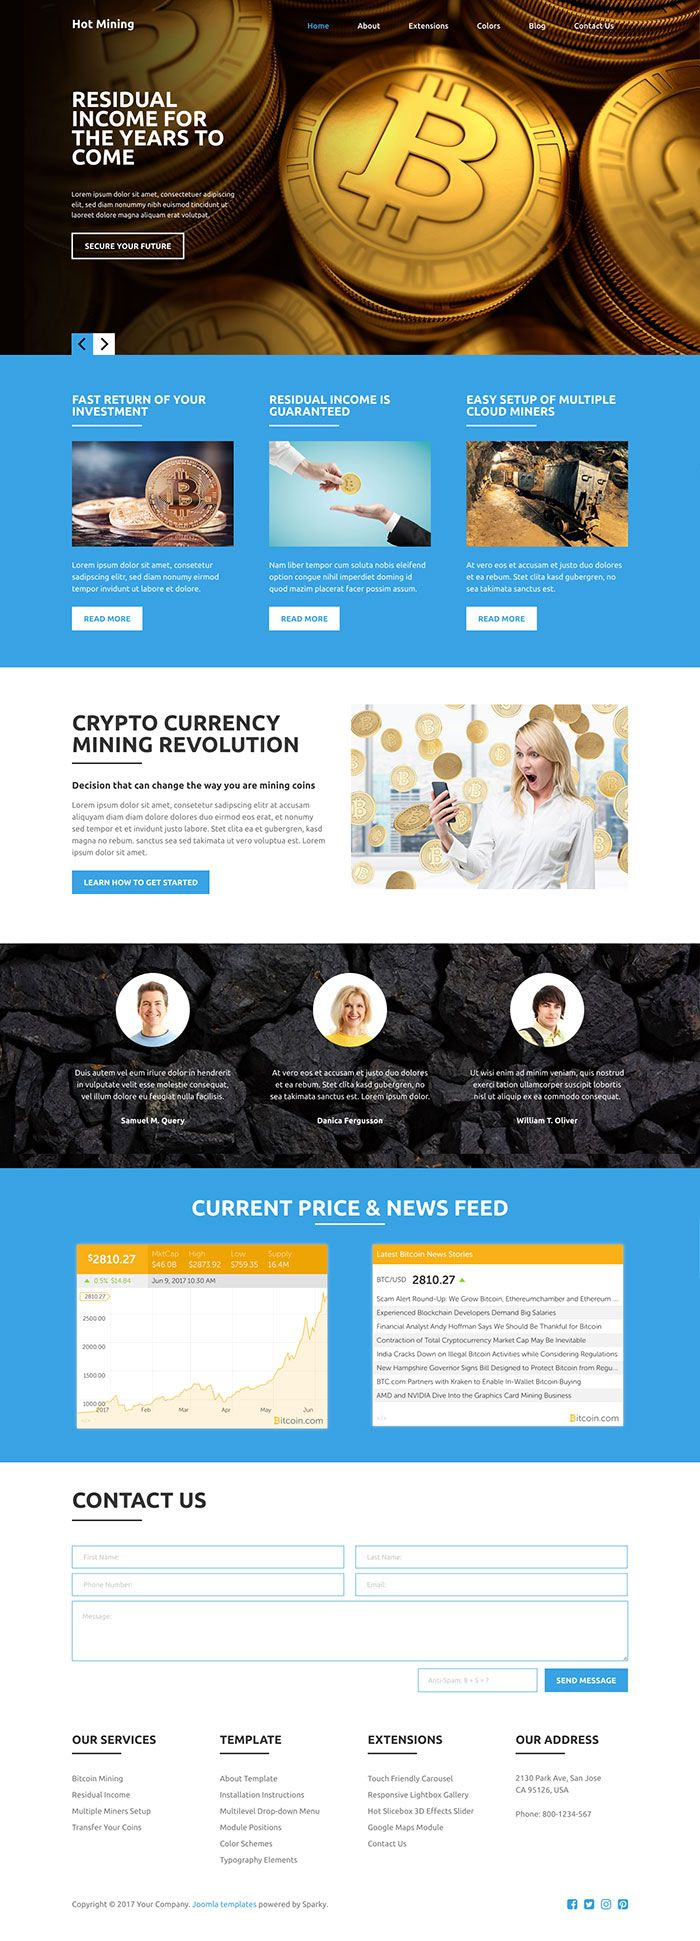 Hot Mining - Joomla Template Screenshot 2